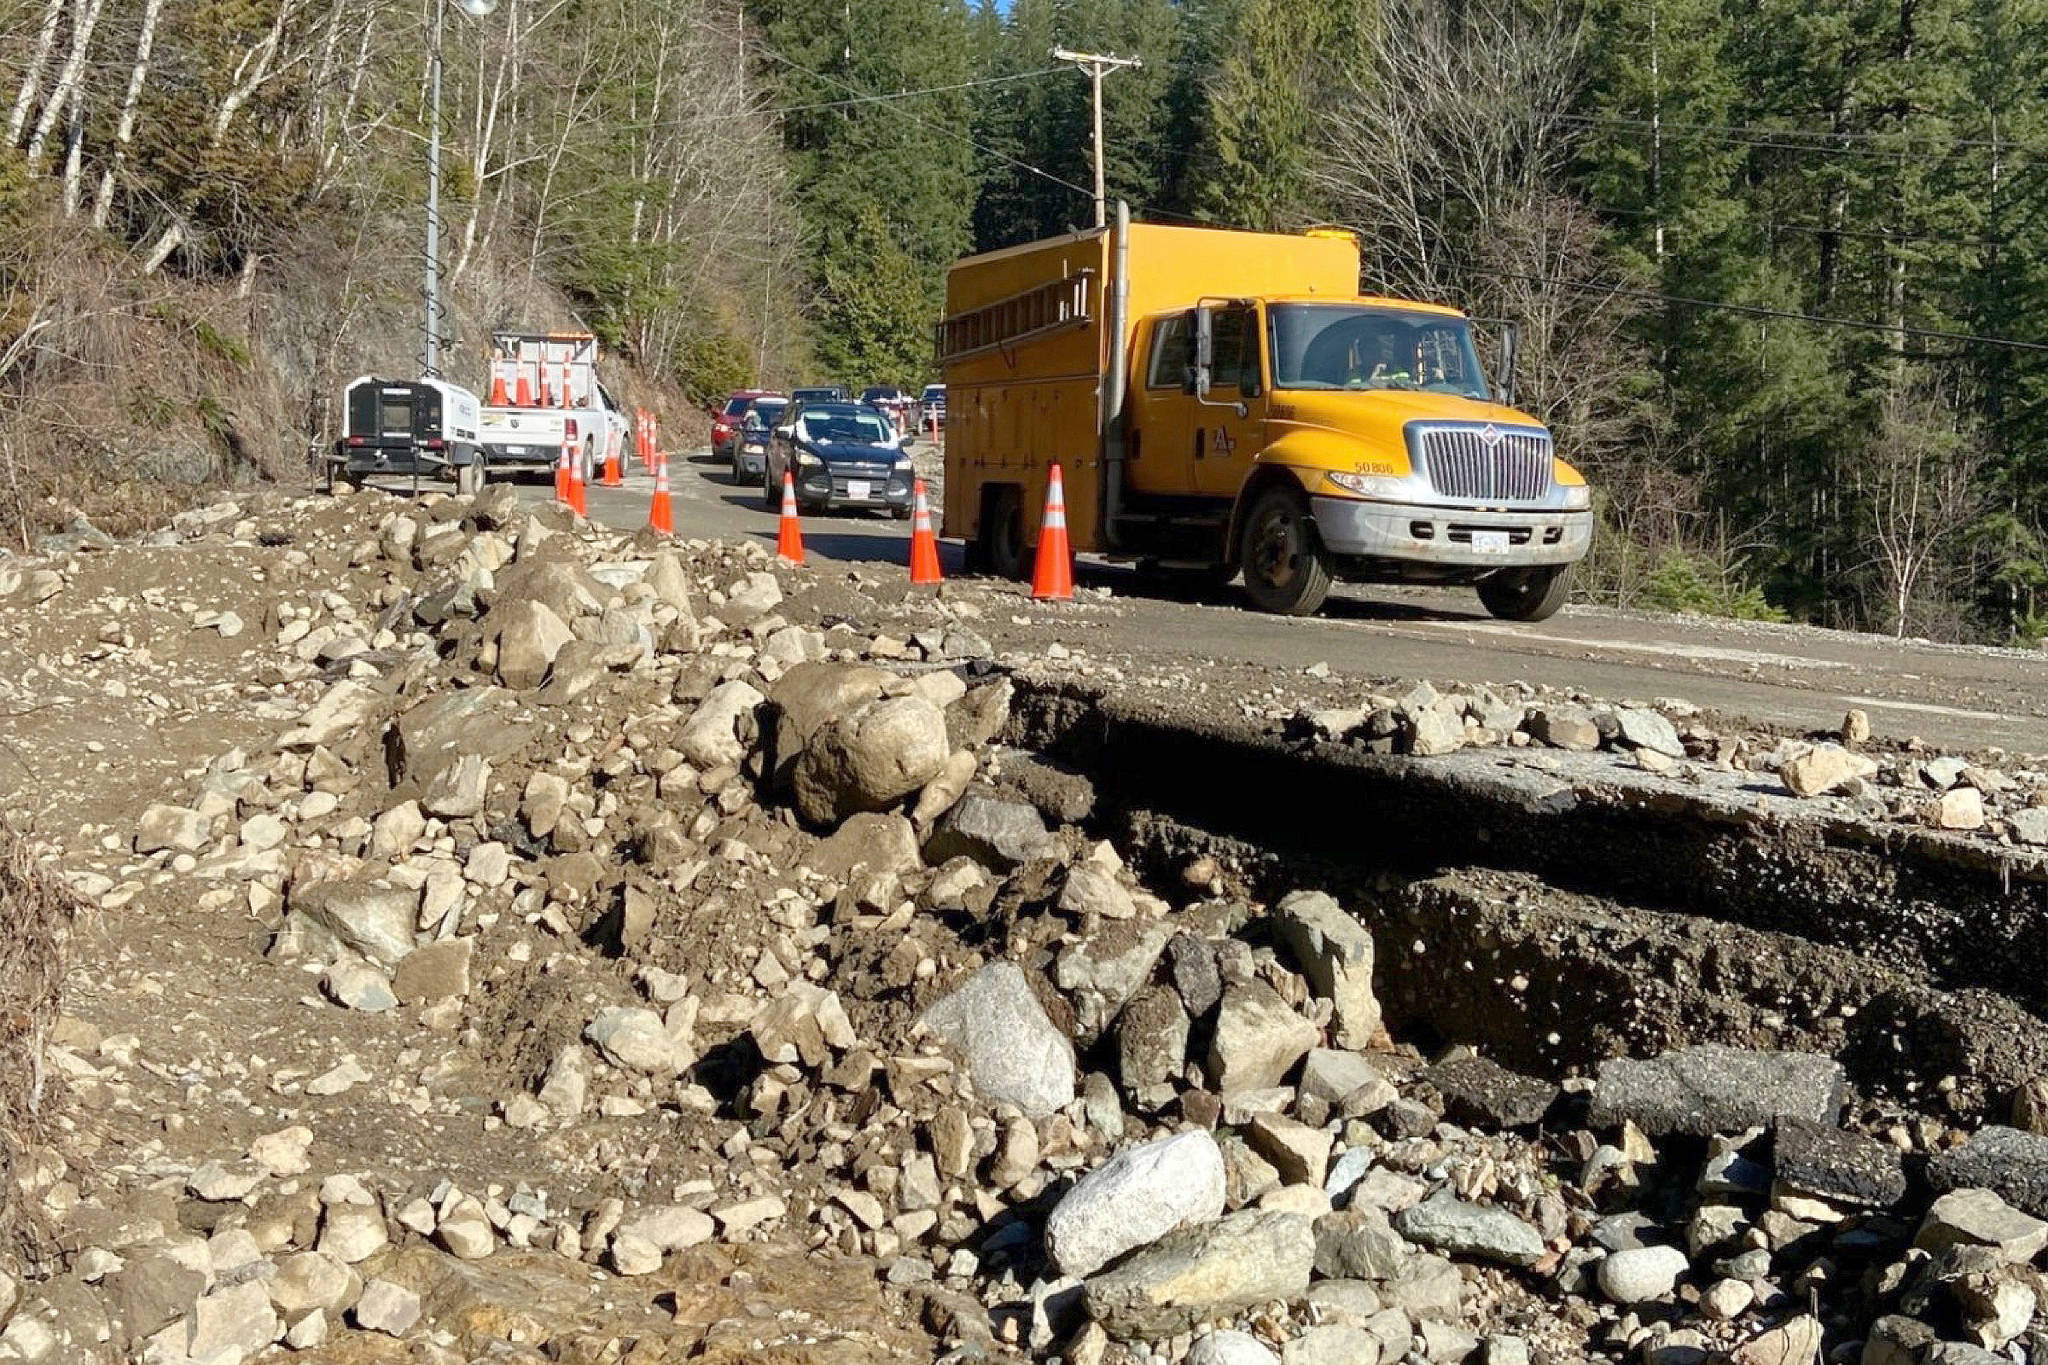 An escort truck from Emil Anderson Maintenance rolls ahead of a convoy of vehicles navigating the critically damaged Hemlock Valley Rd. on Feb. 3, 2020. (Emil Anderson Maintenance/Contributed)